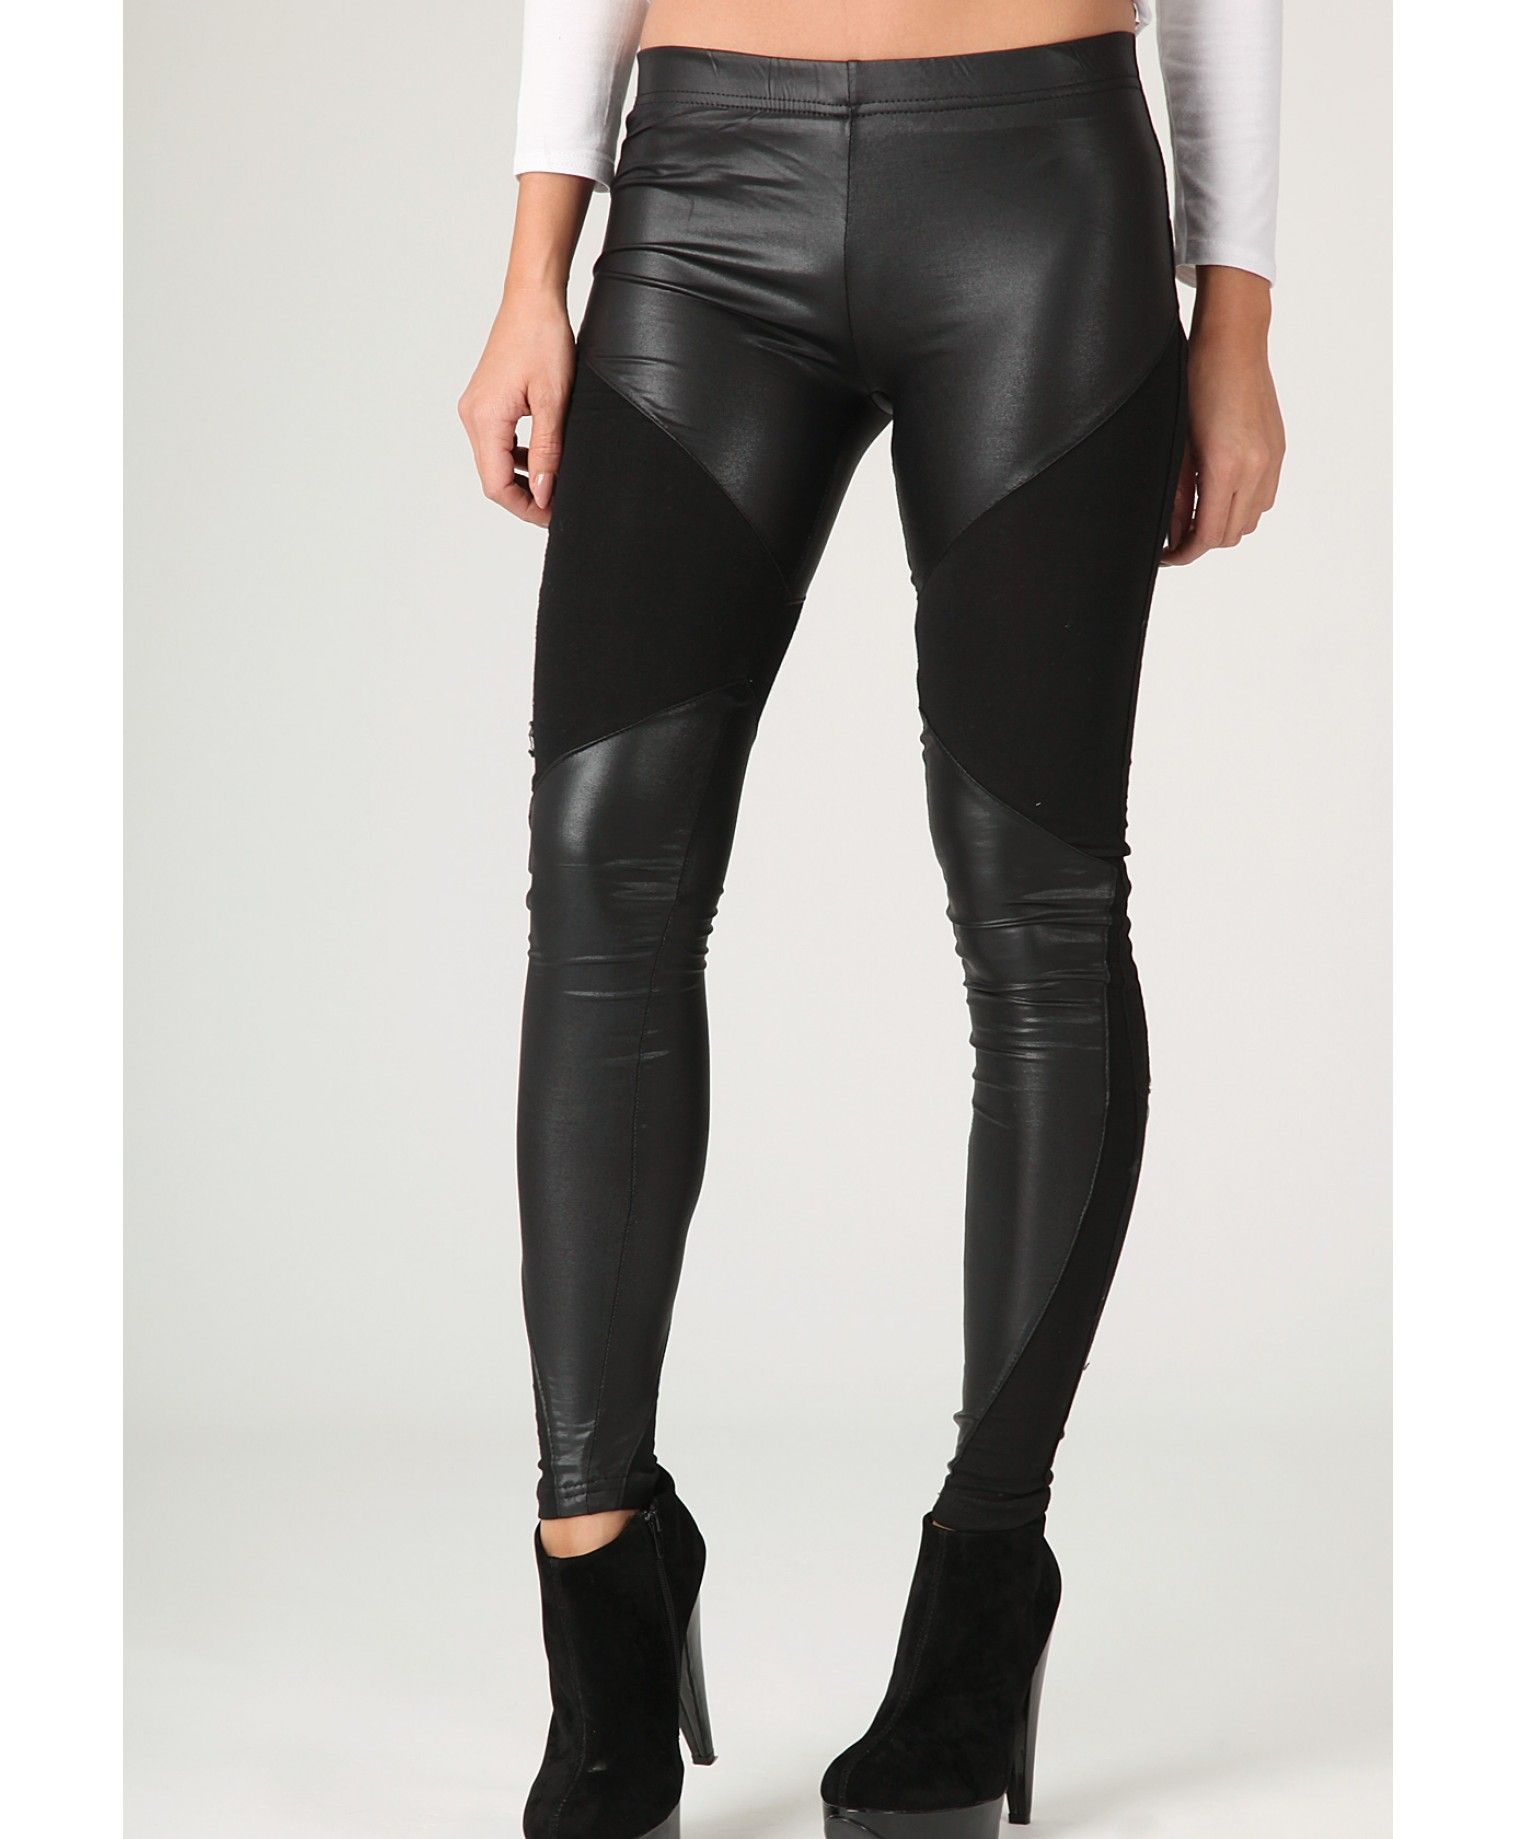 a19bdac79509f Sawyer Leather Panel Leggings | Clothes | Pinterest | Leather panel ...